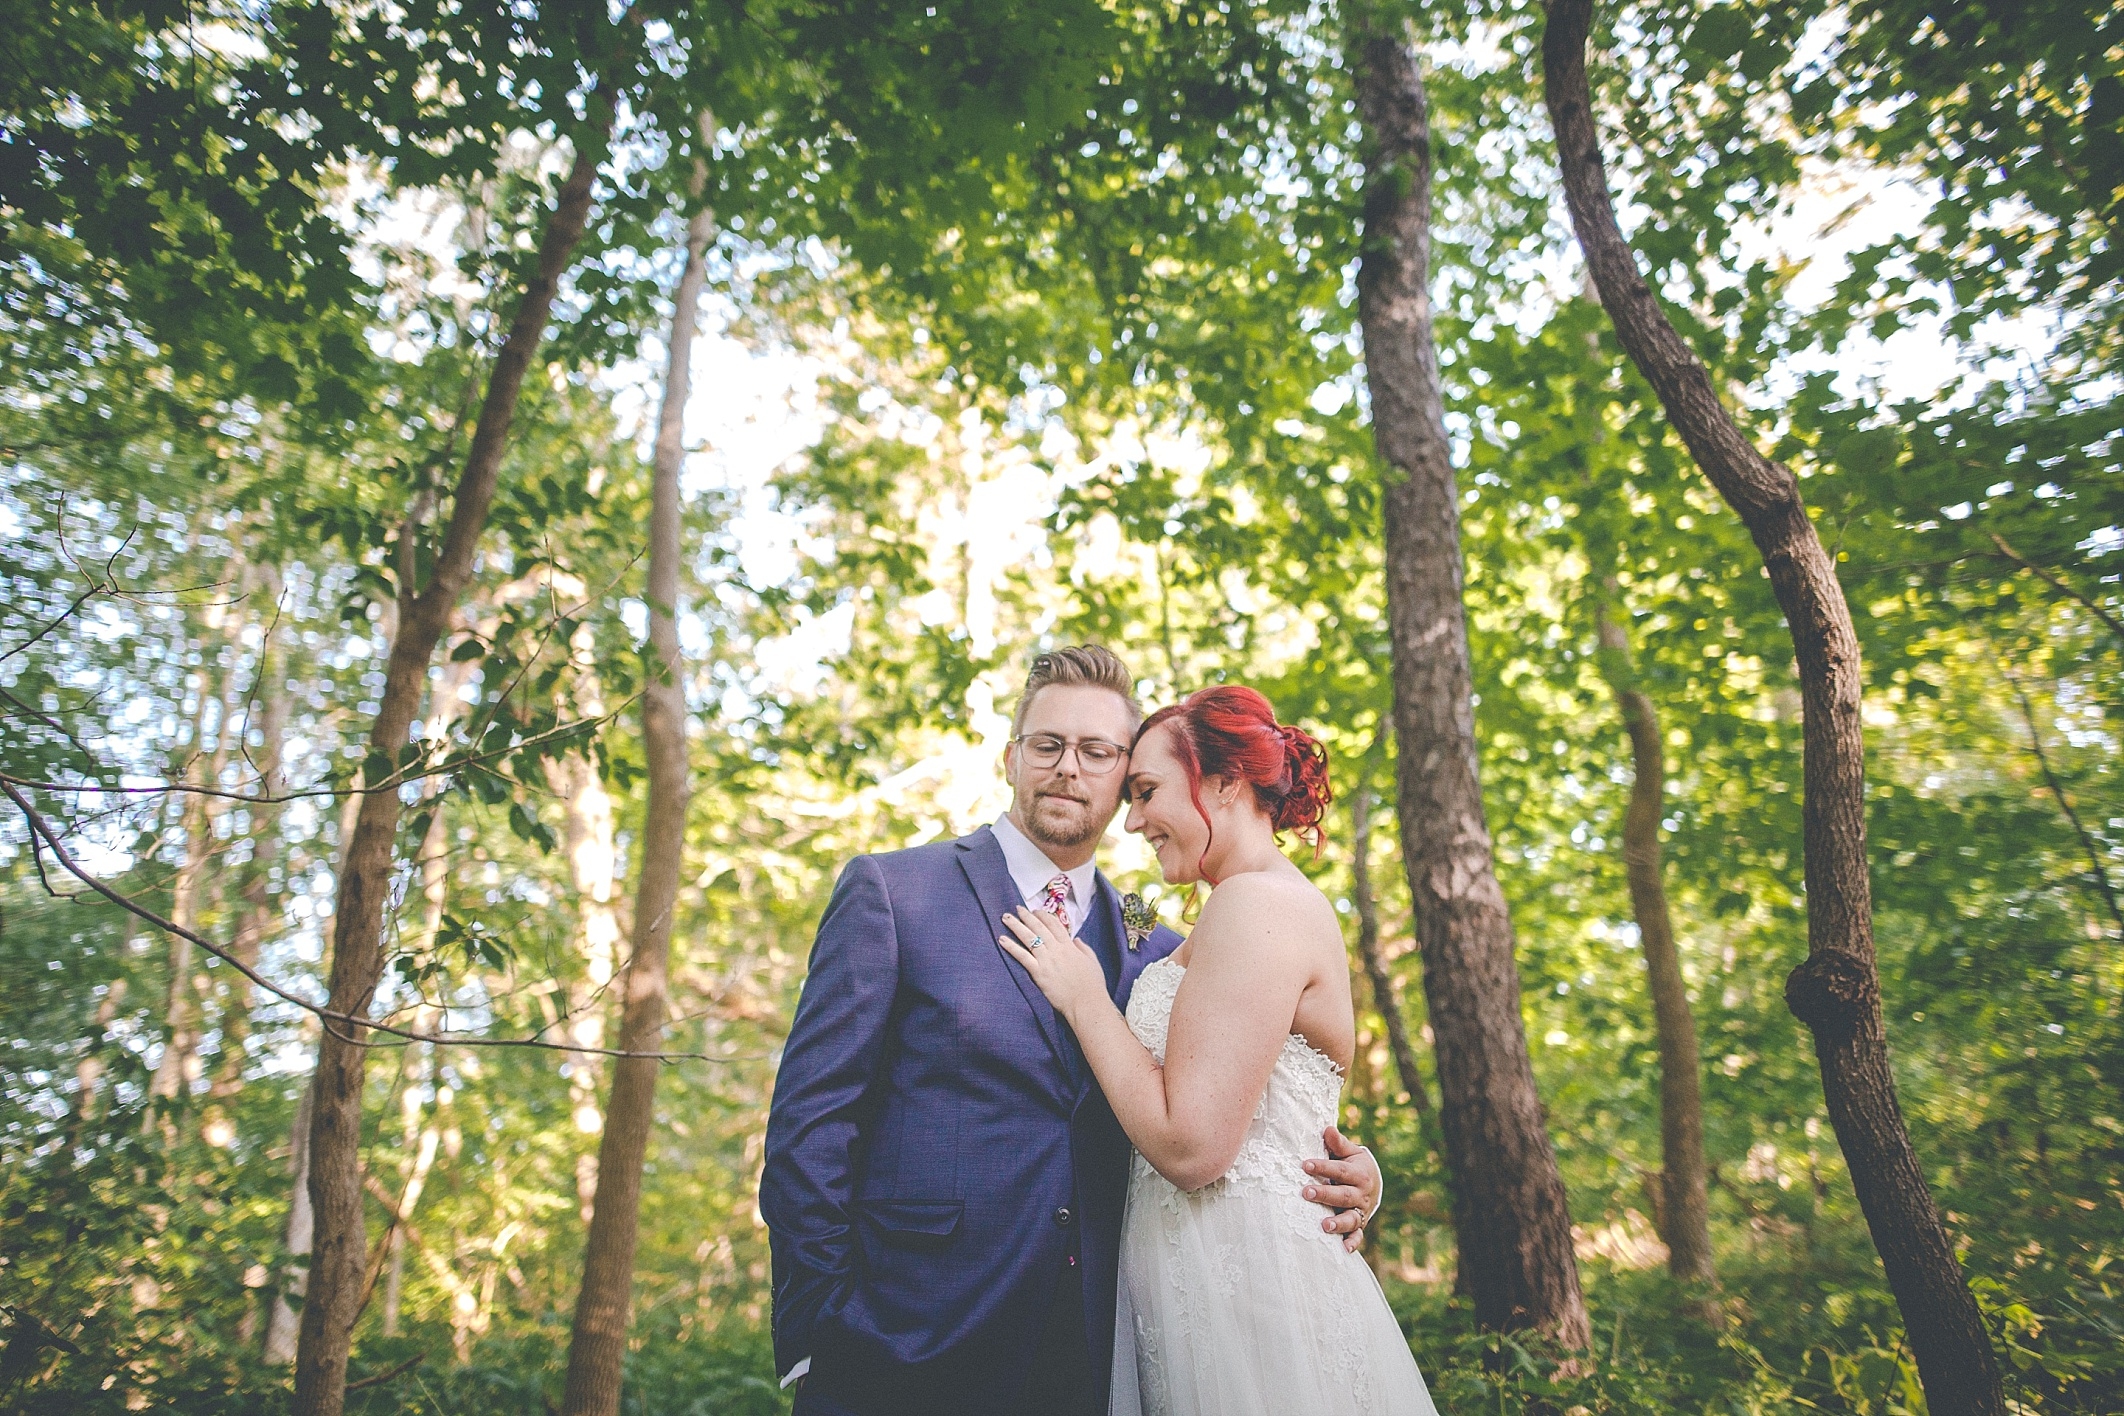 wedding-photographer-dayton-ohio_0138.jpg